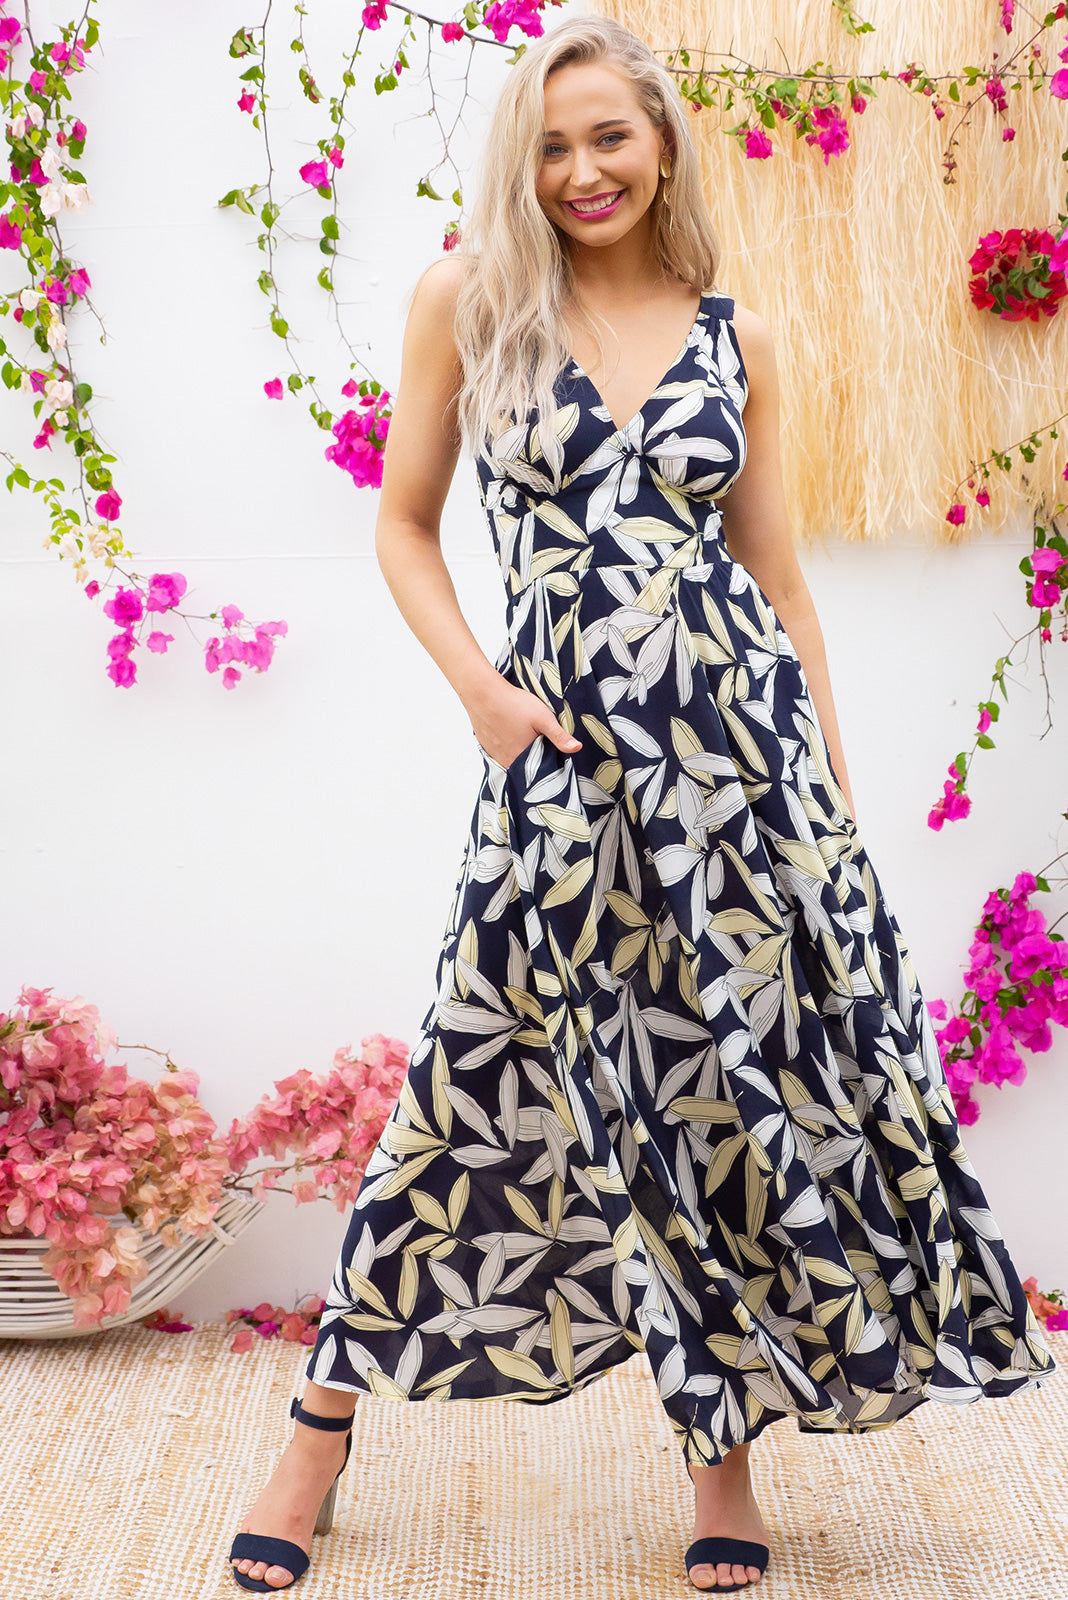 Lola Chichi Navy Maxi Dress features a vintage inspired fitted basque waist and elasticated waist with a sleeveless design and deep v neck the fabric is a soft woven rayon in a navy, white and pale yellow leaf print